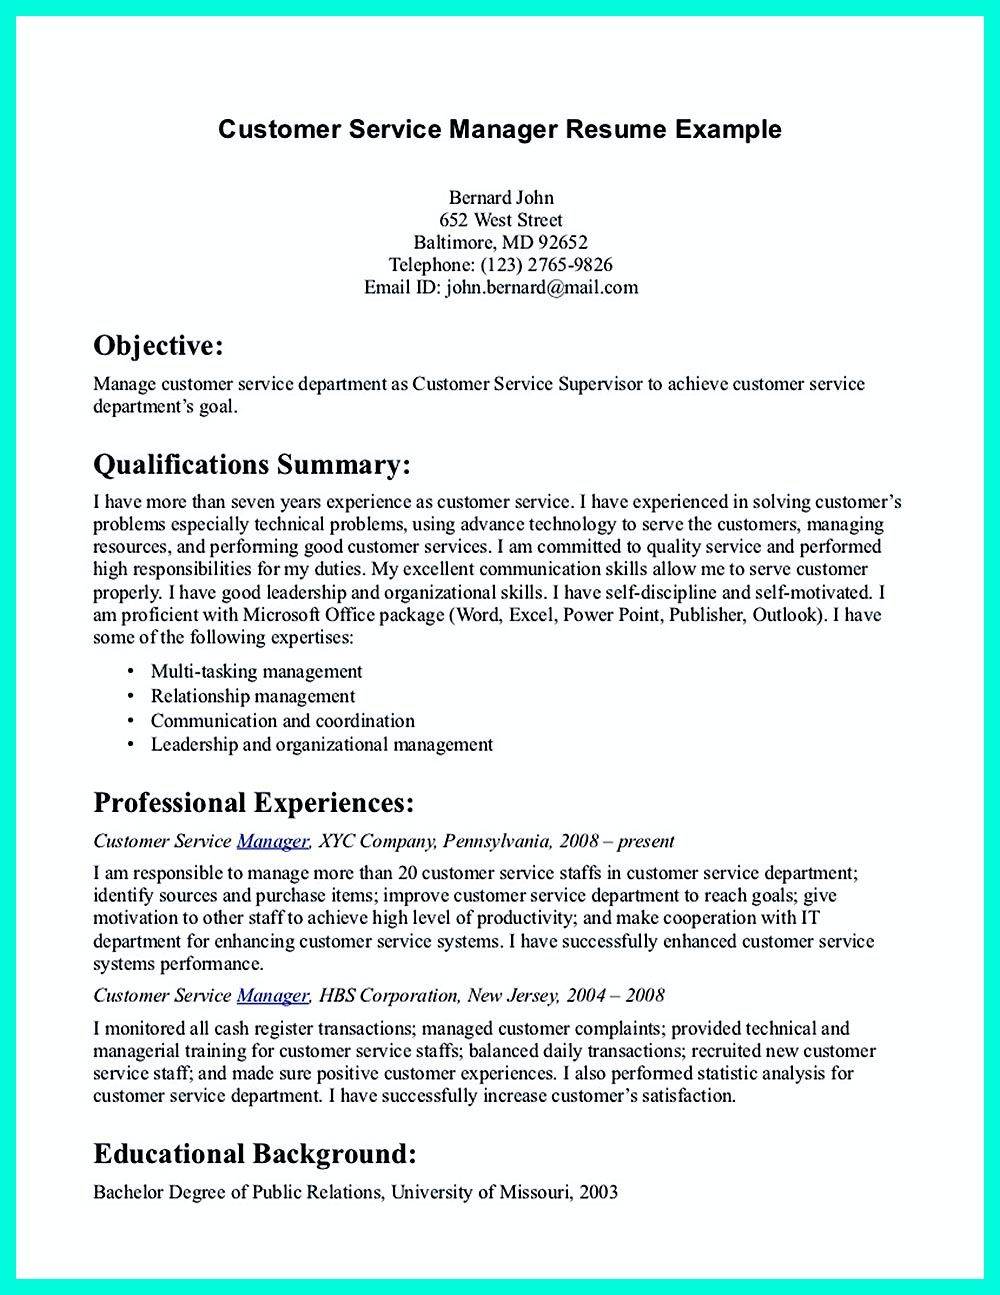 Well Written Csr Resume To Get Applied Soon Resume Objective Statement Examples Resume Objective Statement Resume